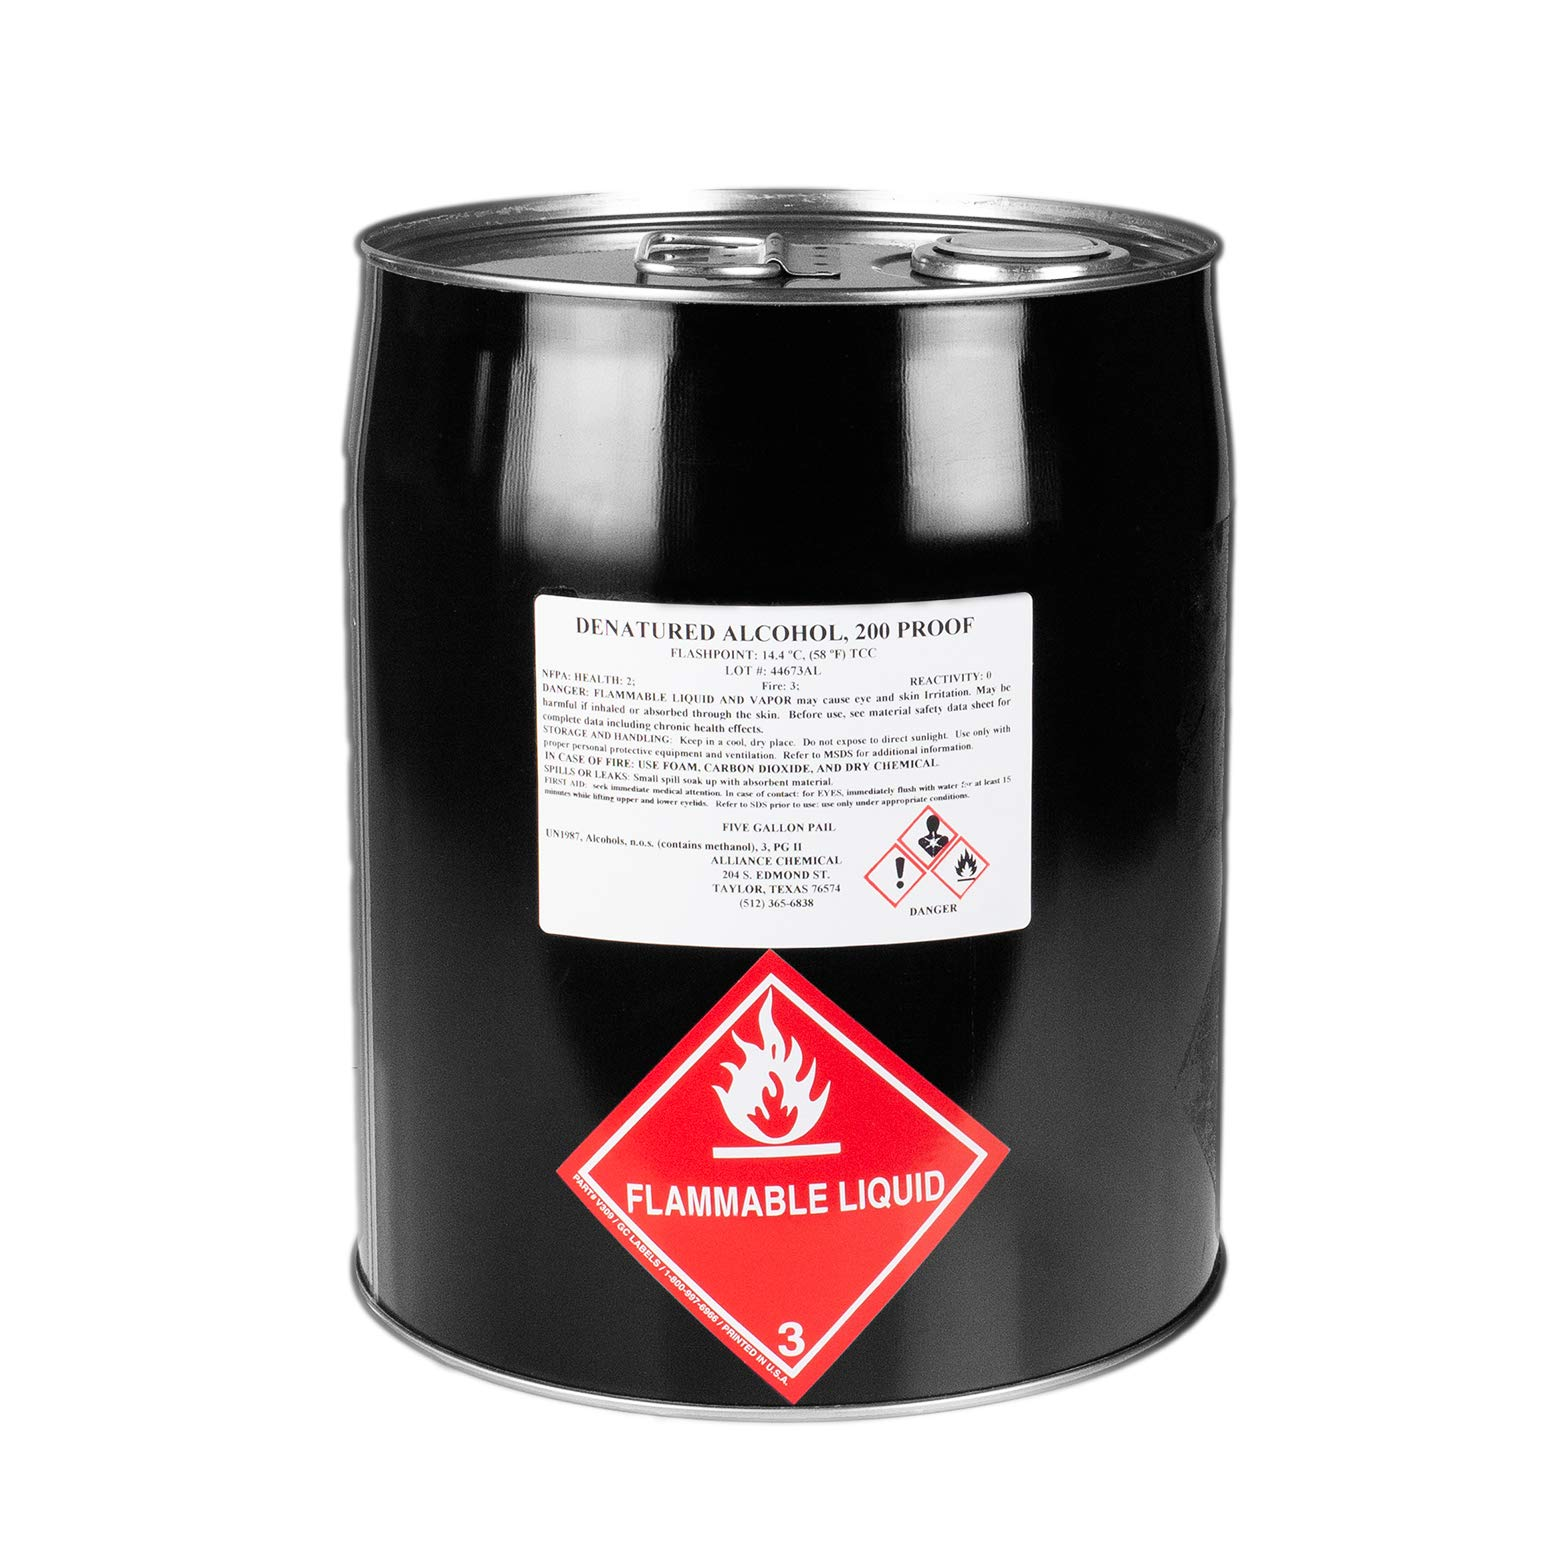 Denatured Alcohol 200 Proof - Five Gallon Pail by Alliance Chemical